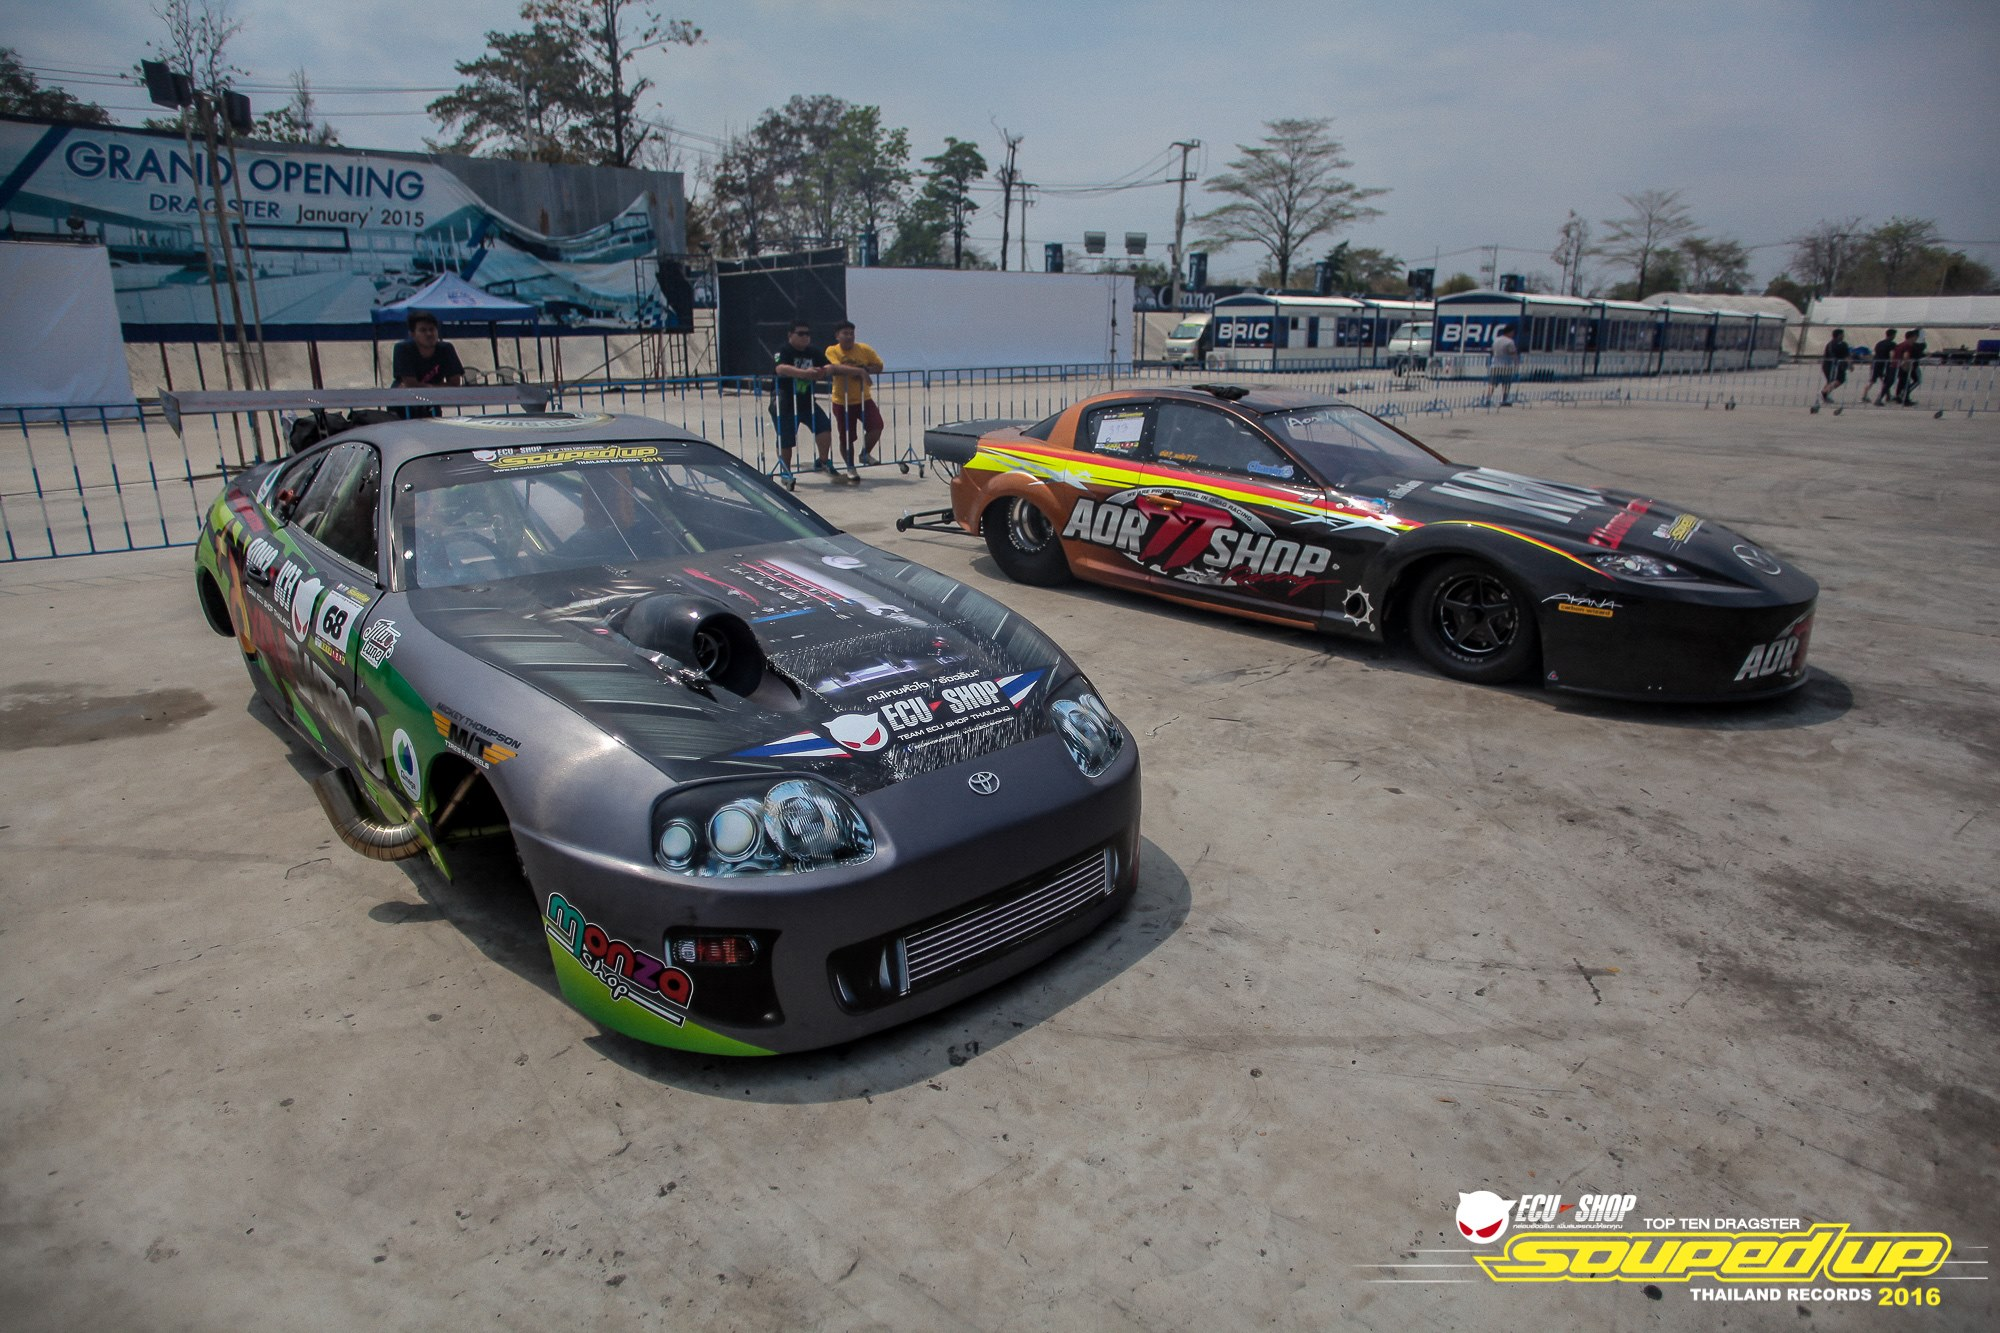 Thailand\'s Growing Import Drag Racing Culture - Drag Import News